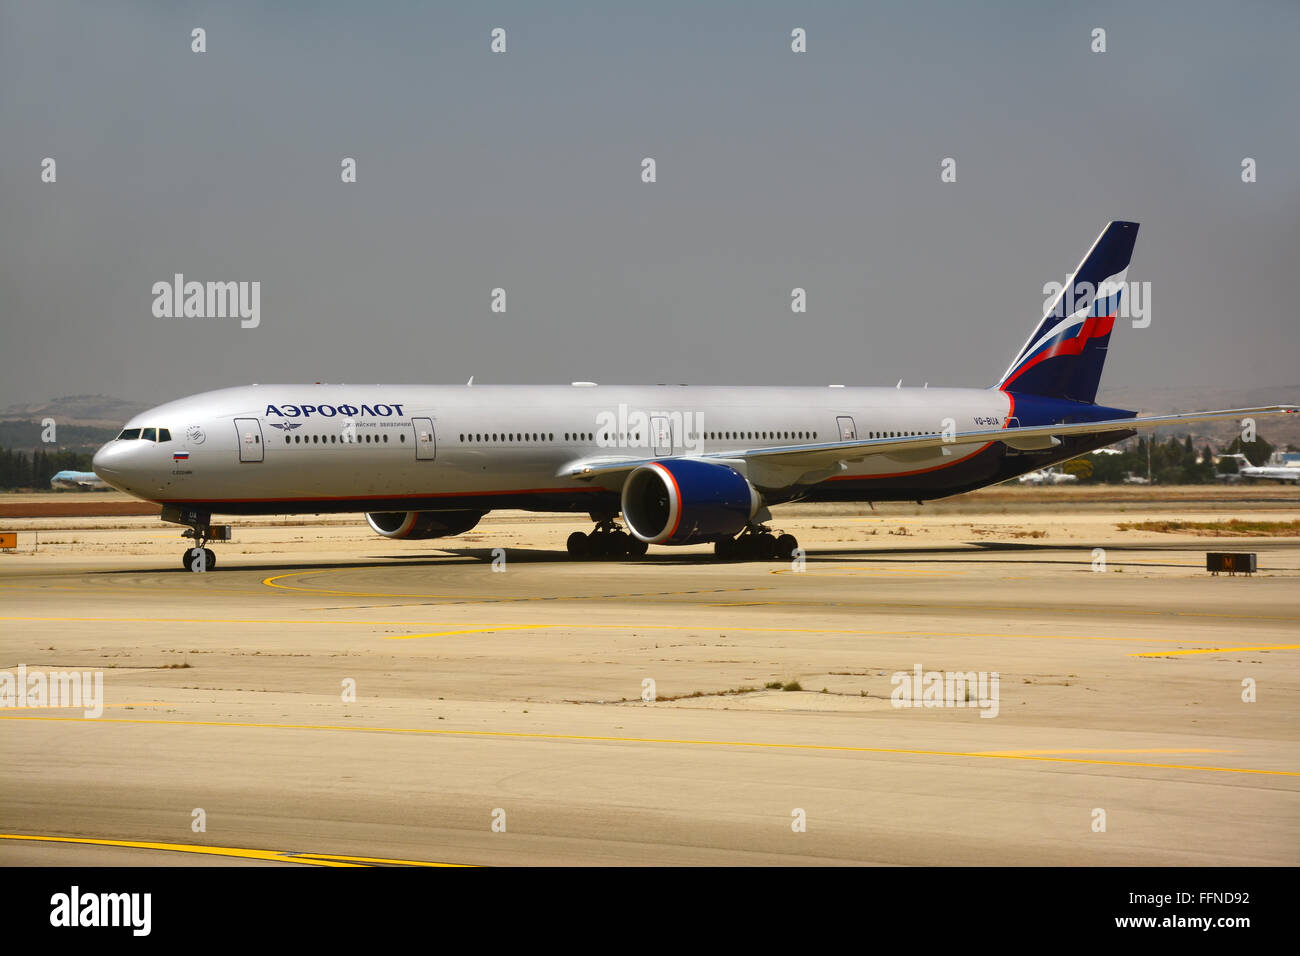 Aeroflot Russian airplane, Boeing 777-300 - Stock Image